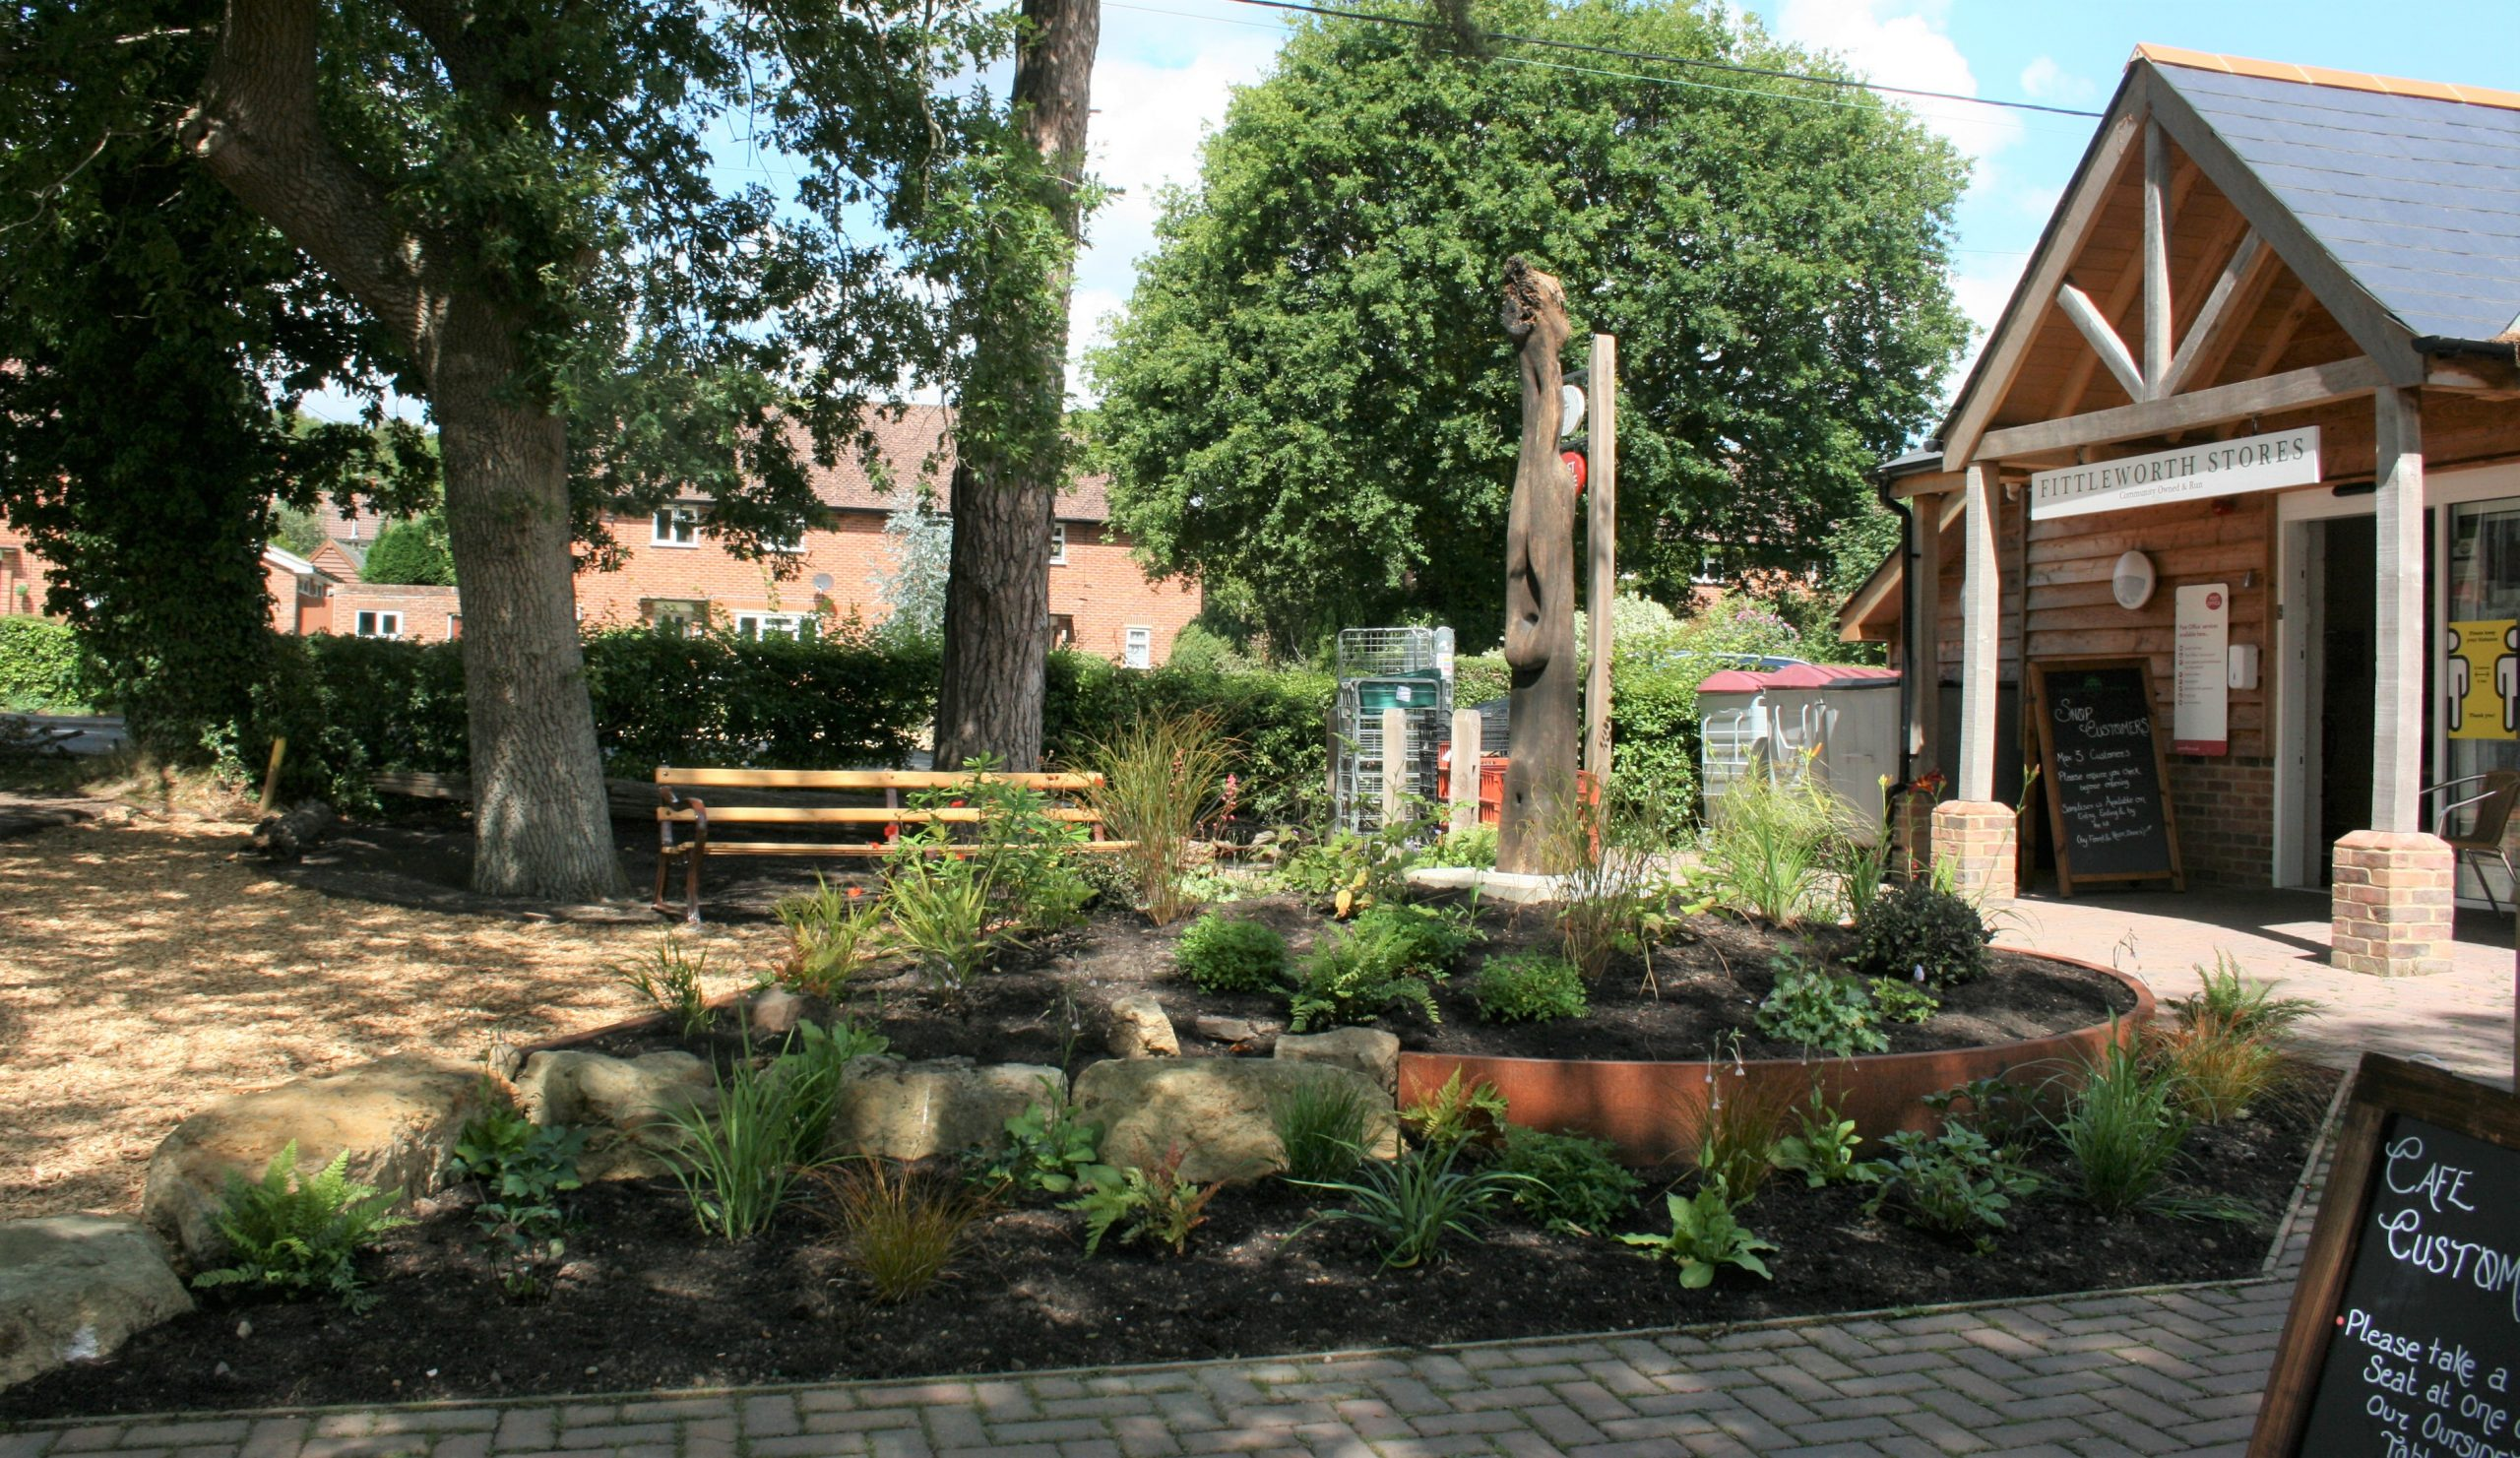 Visiting Fittleworth Stores grows ever more tempting …. with it's new lovely garden and a sculpture